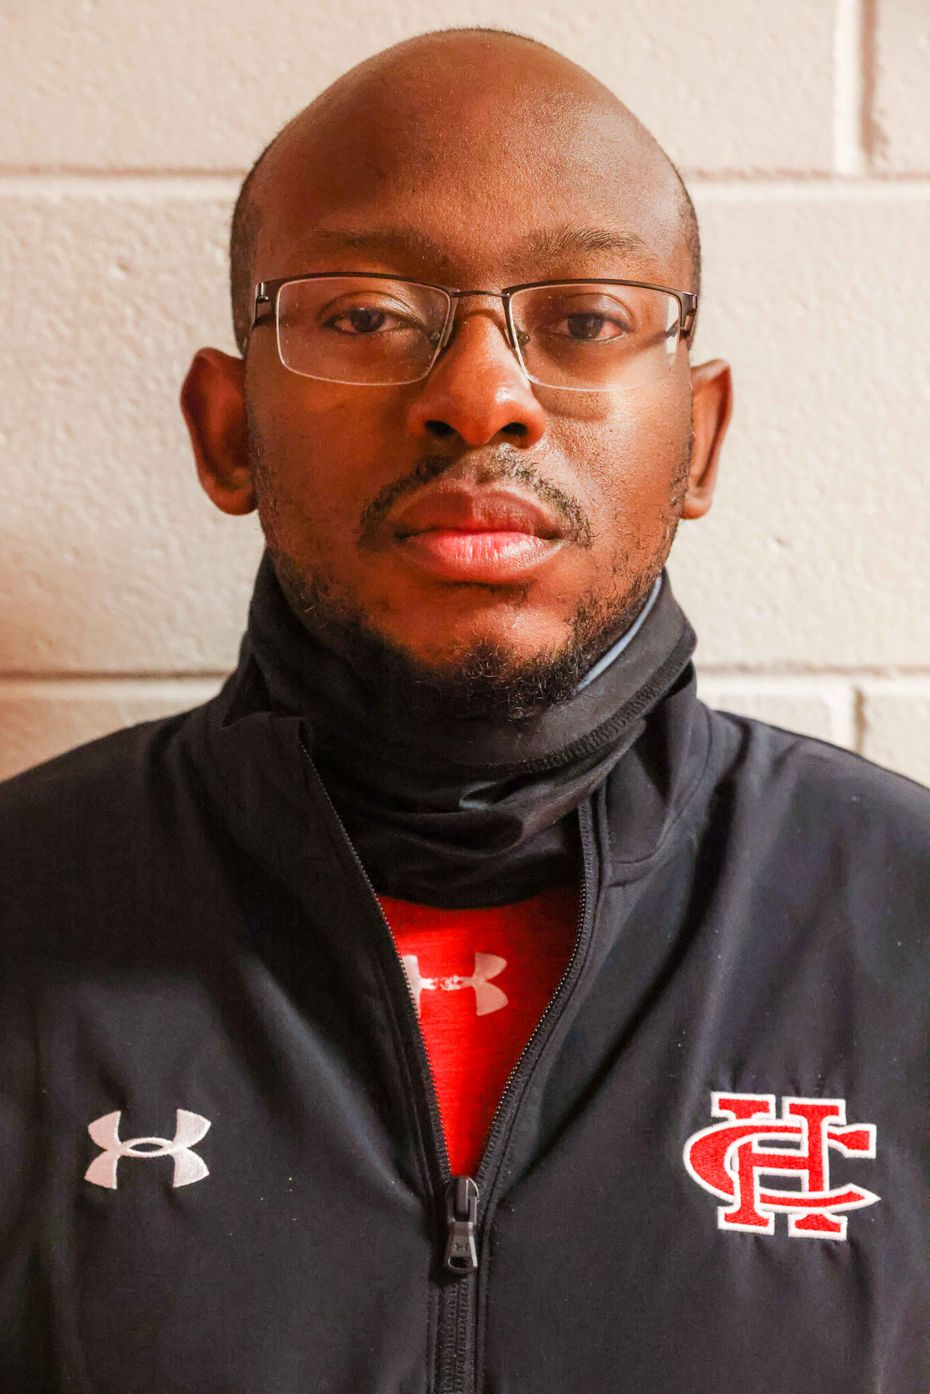 Cedar Hill assistant D.J. Mann had to take the initiative when it came to his own recruiting as a high schooler. What he didn't realize then was that he was learning skills that would shape his career.